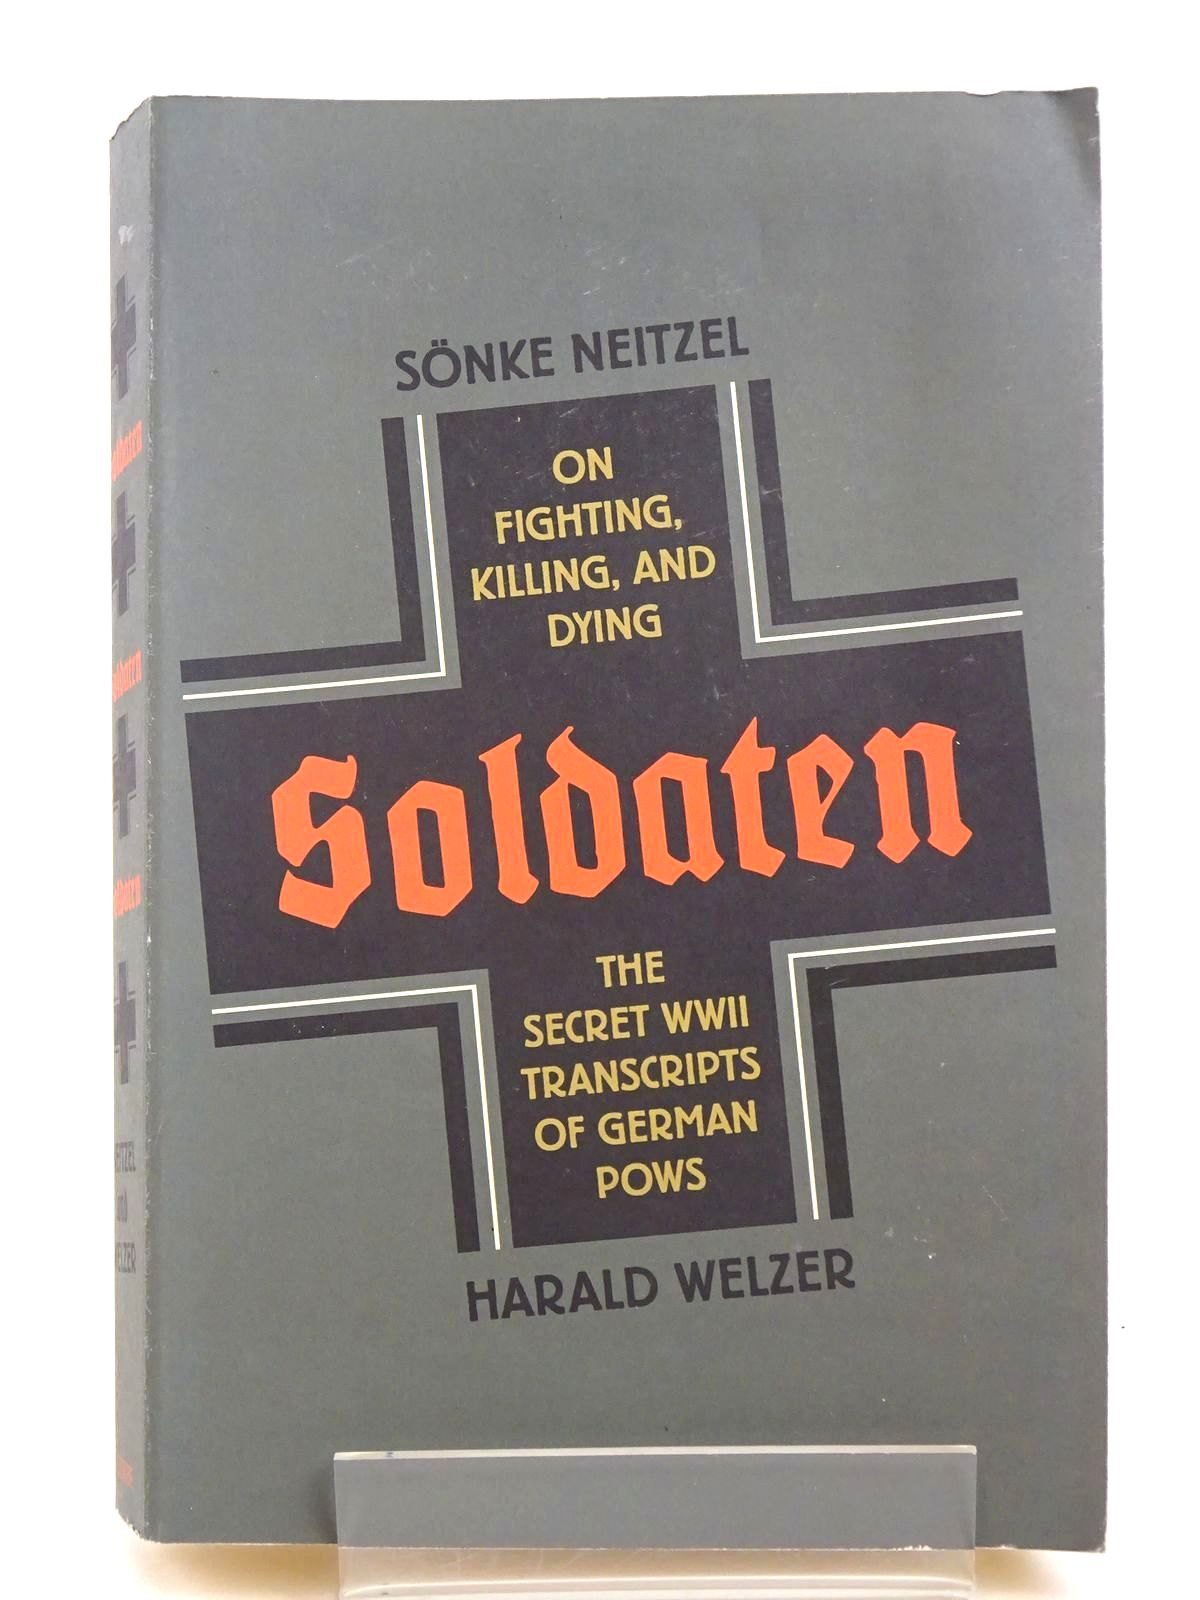 Photo of SOLDATEN ON FIGHTING, KILLING, AND DYING: THE SECRET WWII TRANSCRIPTS OF GERMAN POWS written by Neitzel, Sonke Welzer, Harald published by Scribe (STOCK CODE: 1818460)  for sale by Stella & Rose's Books